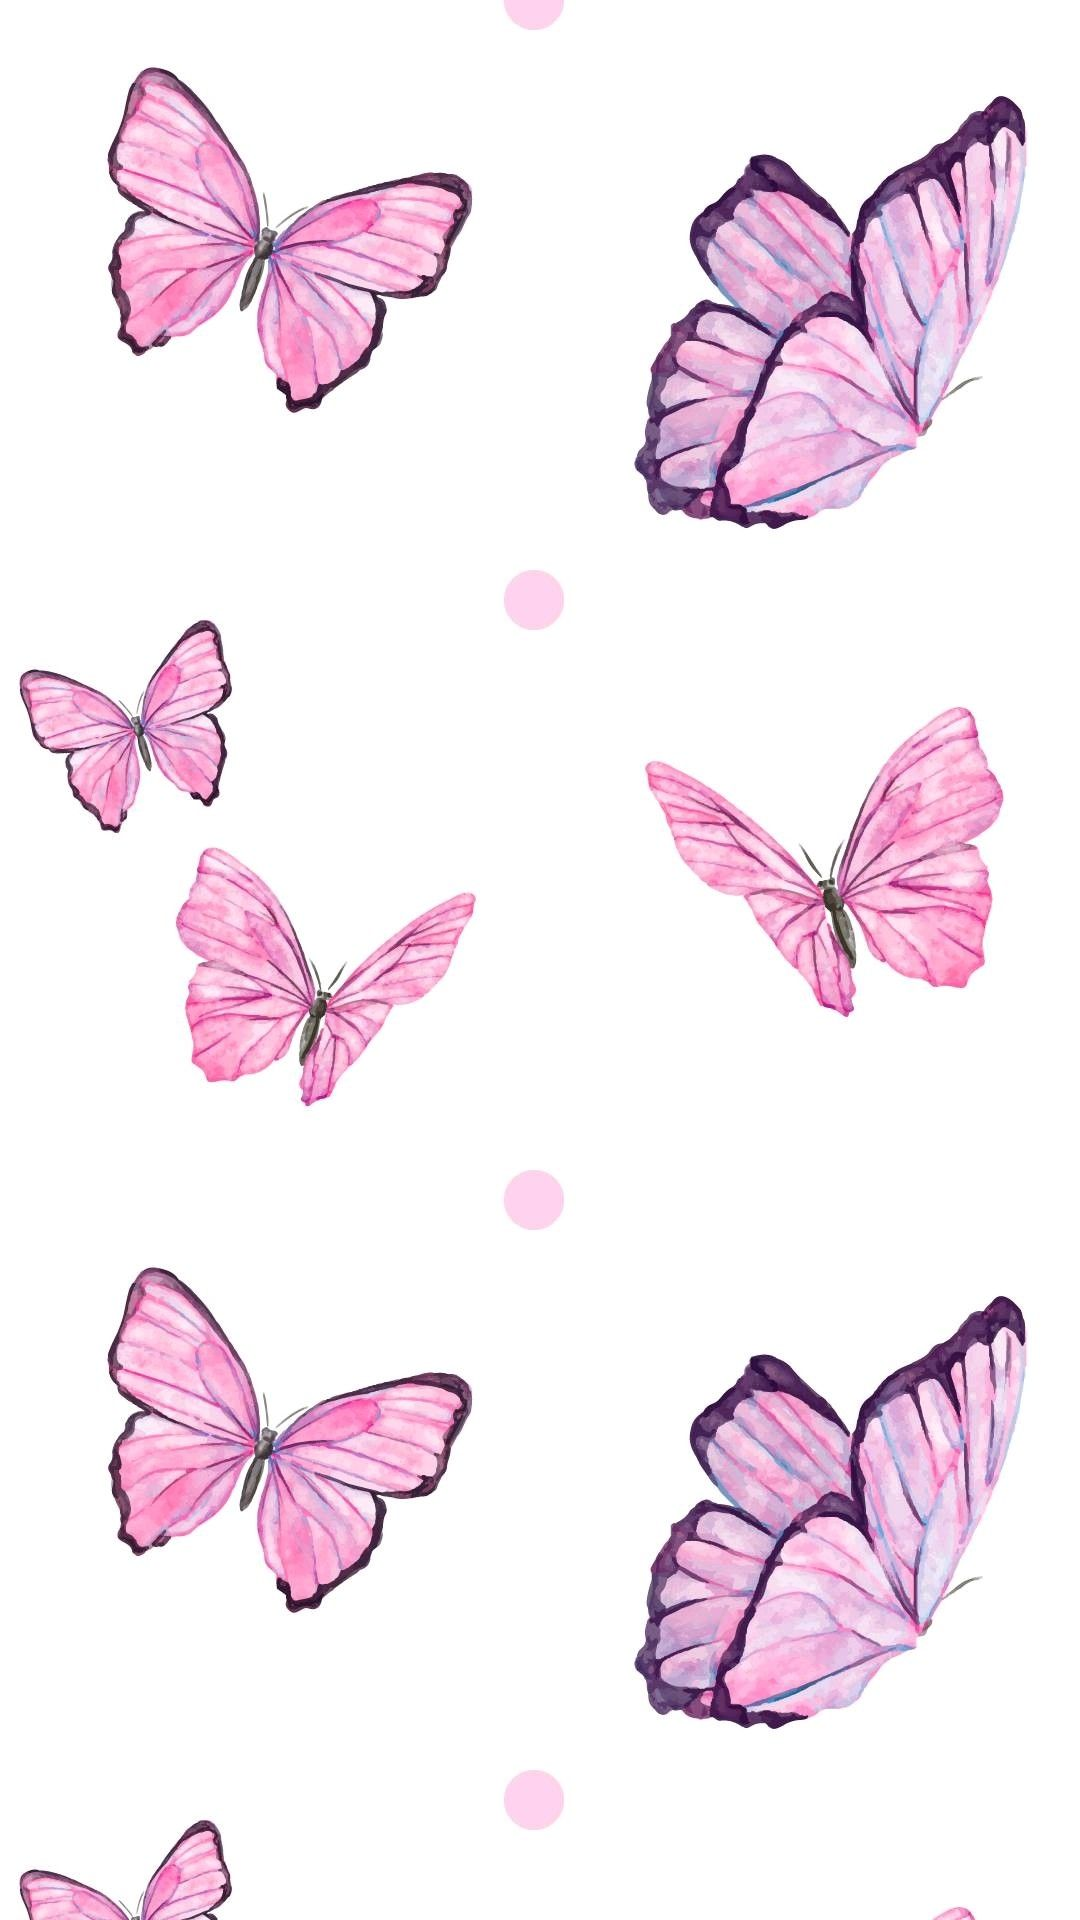 Iphone Aesthetic Tumblr Iphone Pink Butterfly Wallpaper